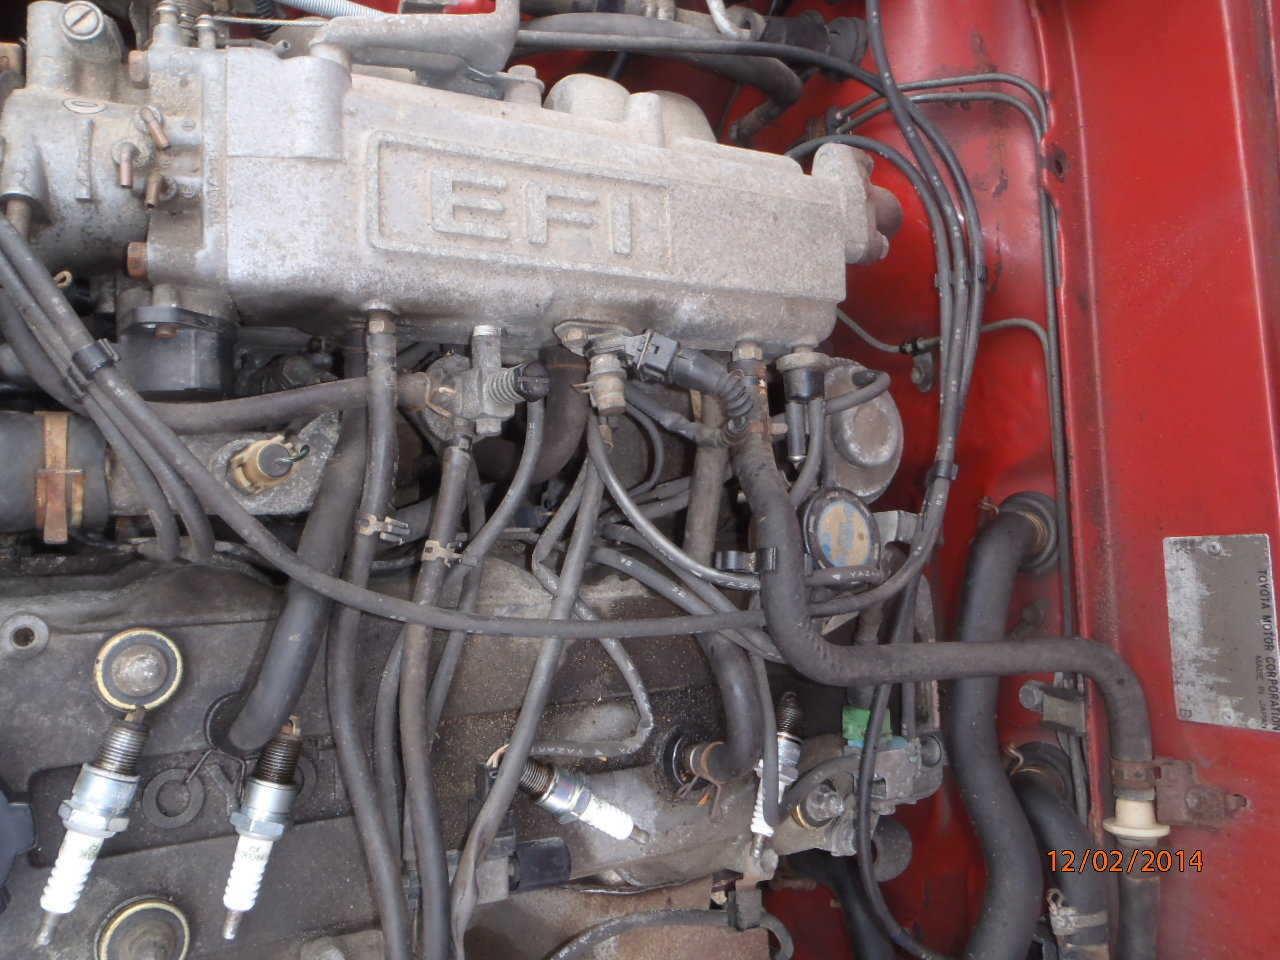 Cleaning Idle-Up actuator/diaphragm - YotaTech Forums